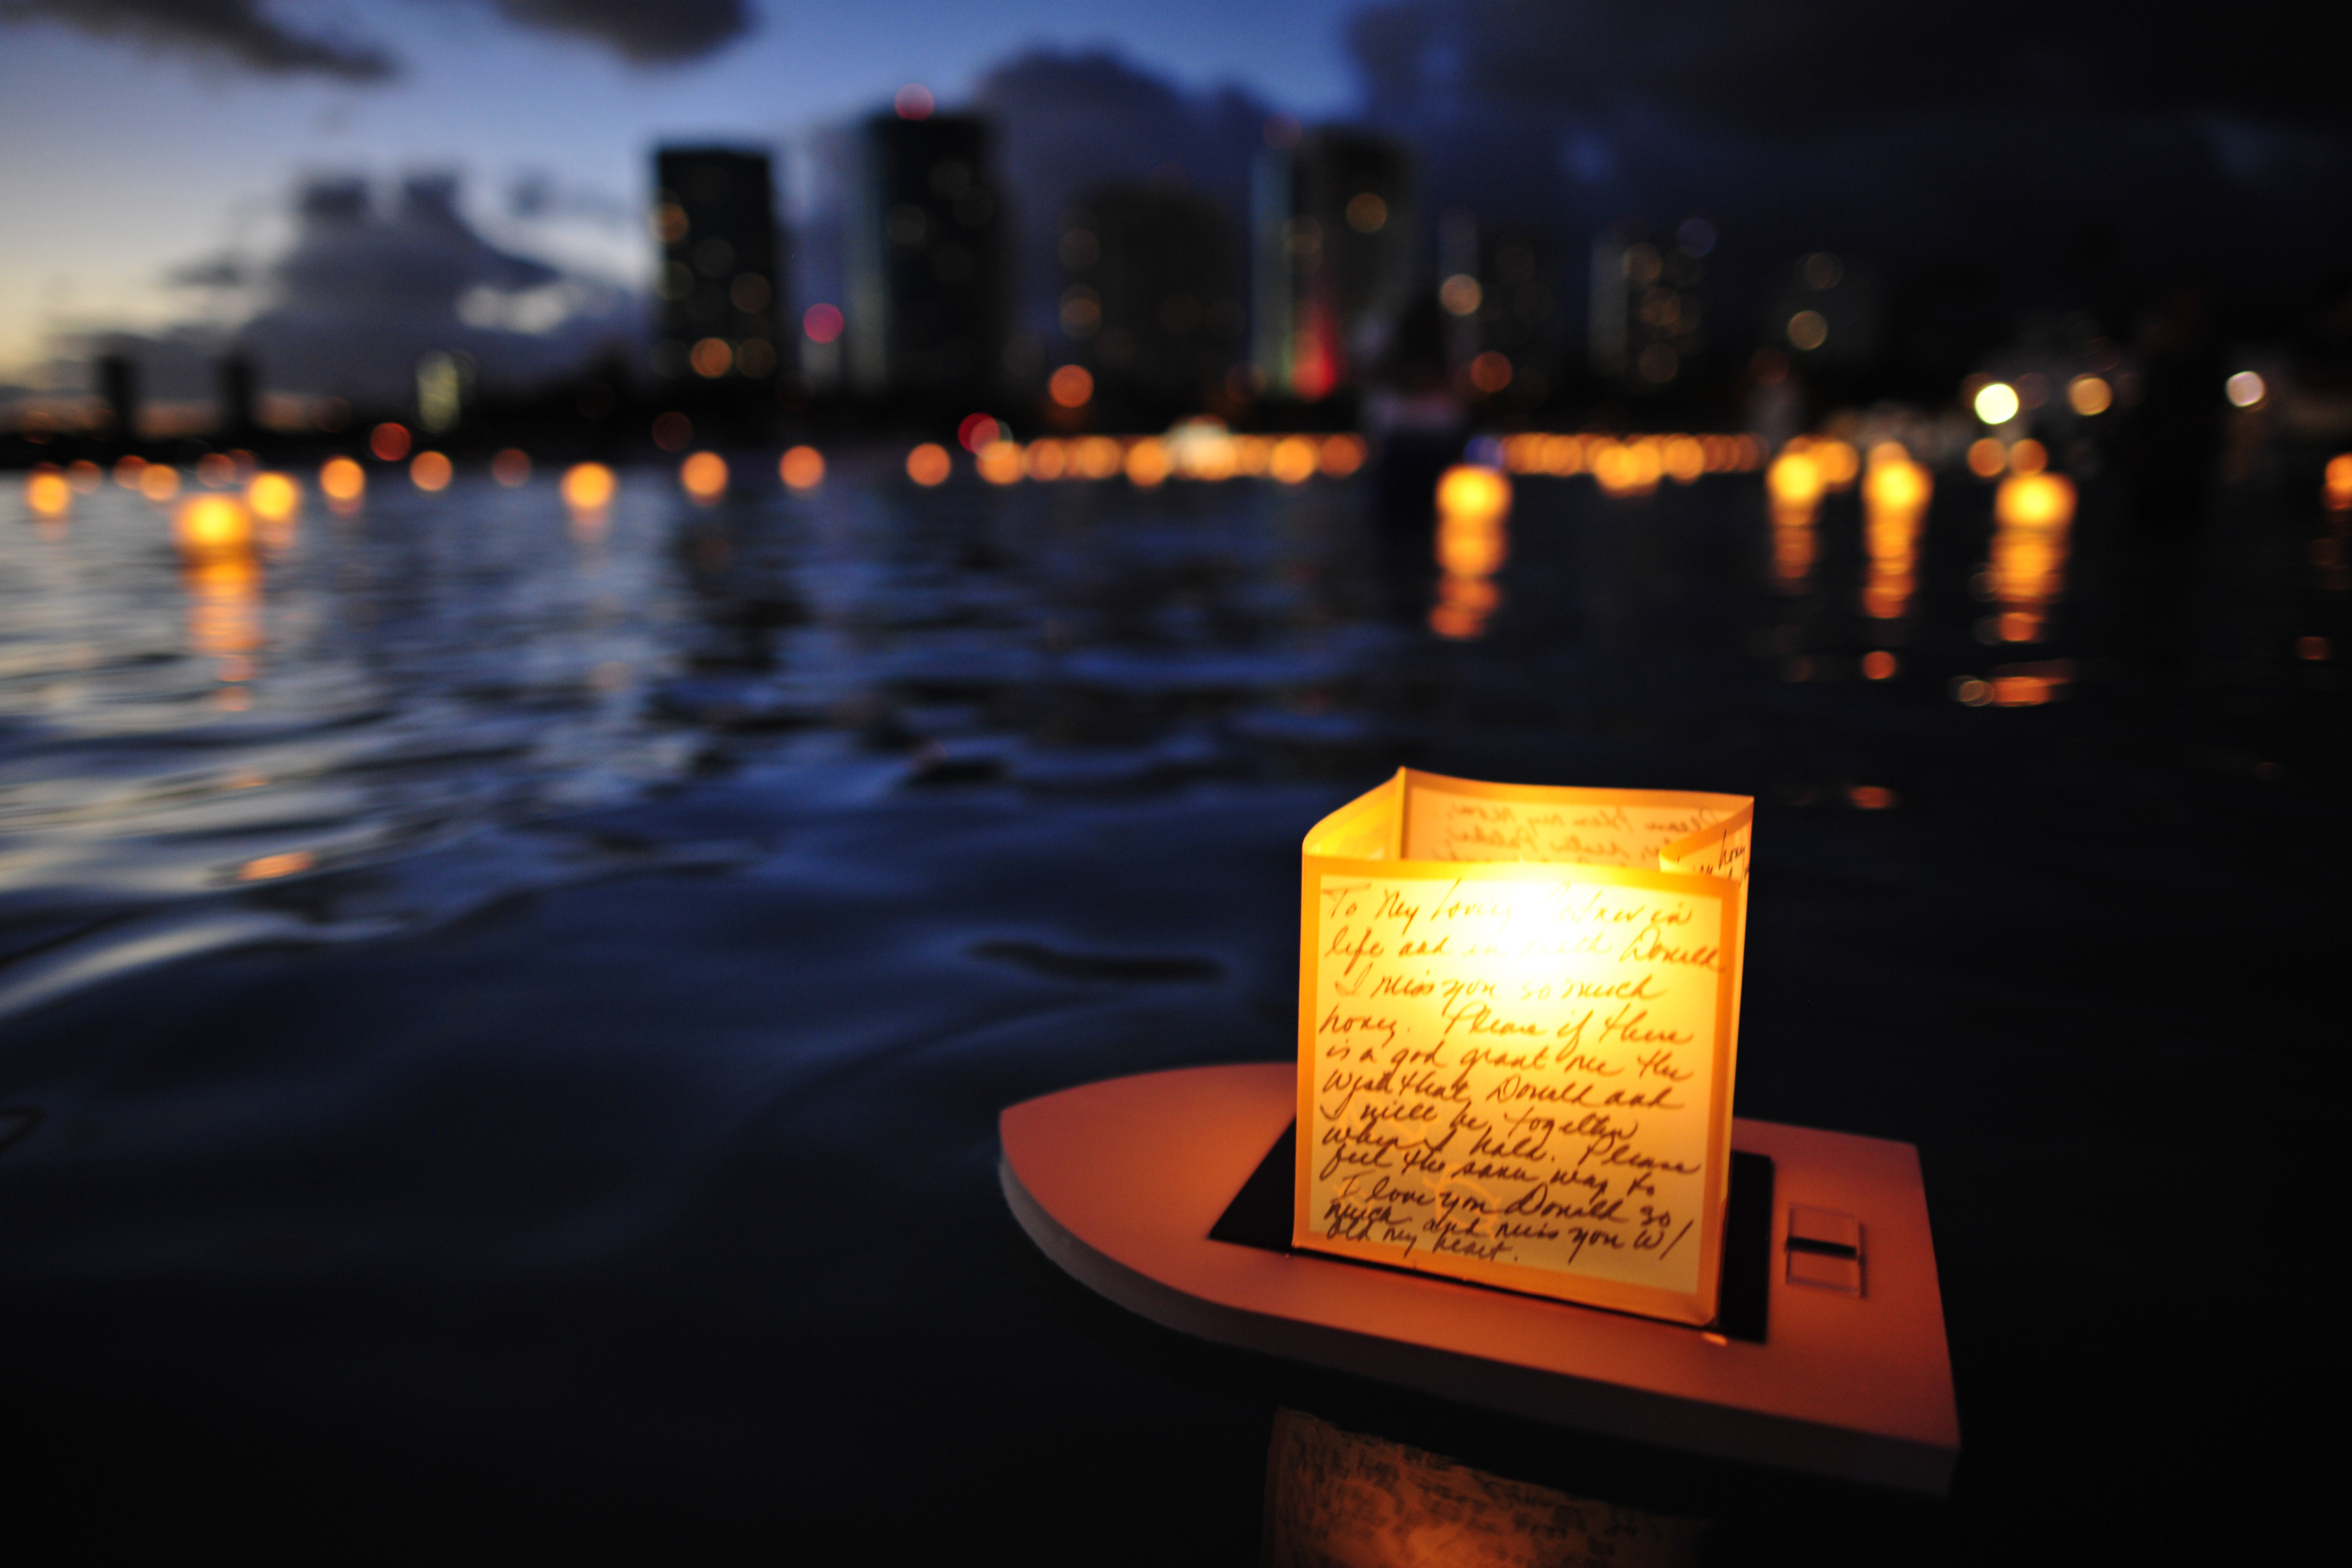 17th Annual Lantern Floating Hawaii Ceremony is the Largest